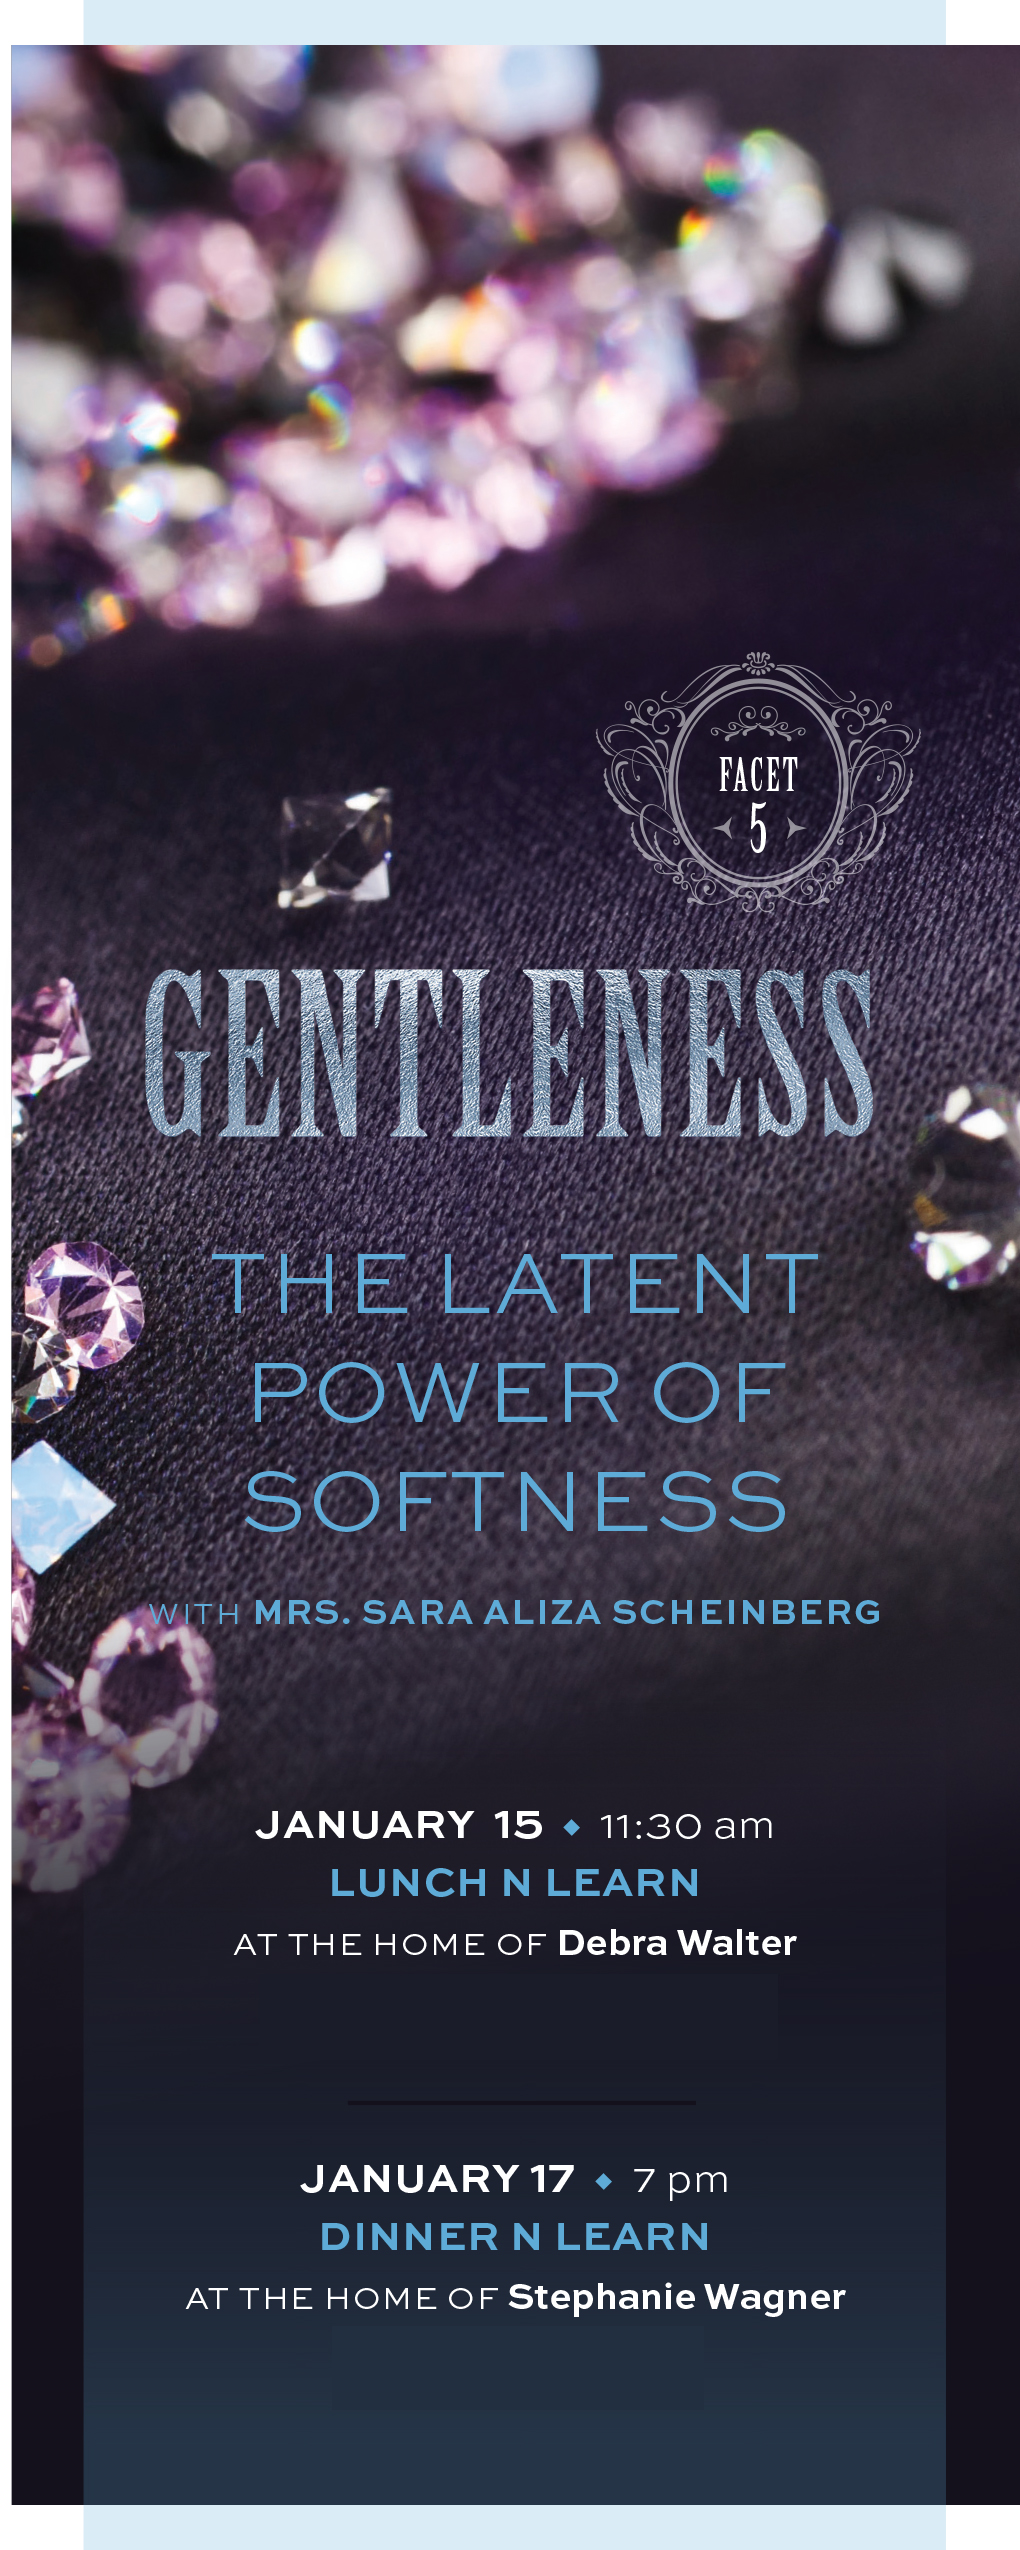 Facets - Gentleness: The Latent Power of Softness Lunch 'n Learn